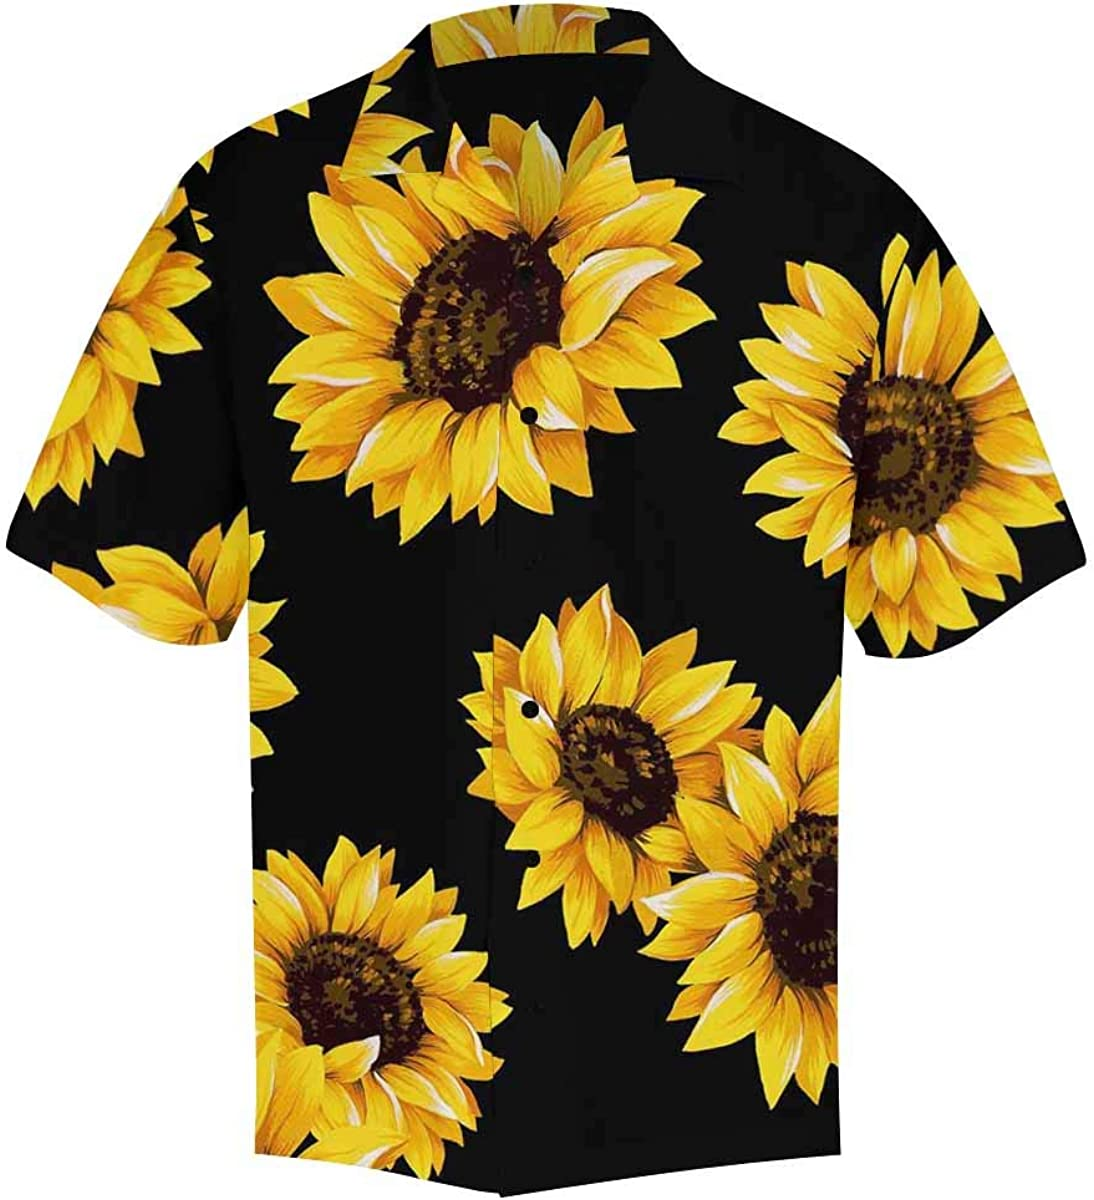 InterestPrint Comfortably Collared Field of Blooming Sunflowers Casual Shirts V-Neck Short Sleeve Beach Top